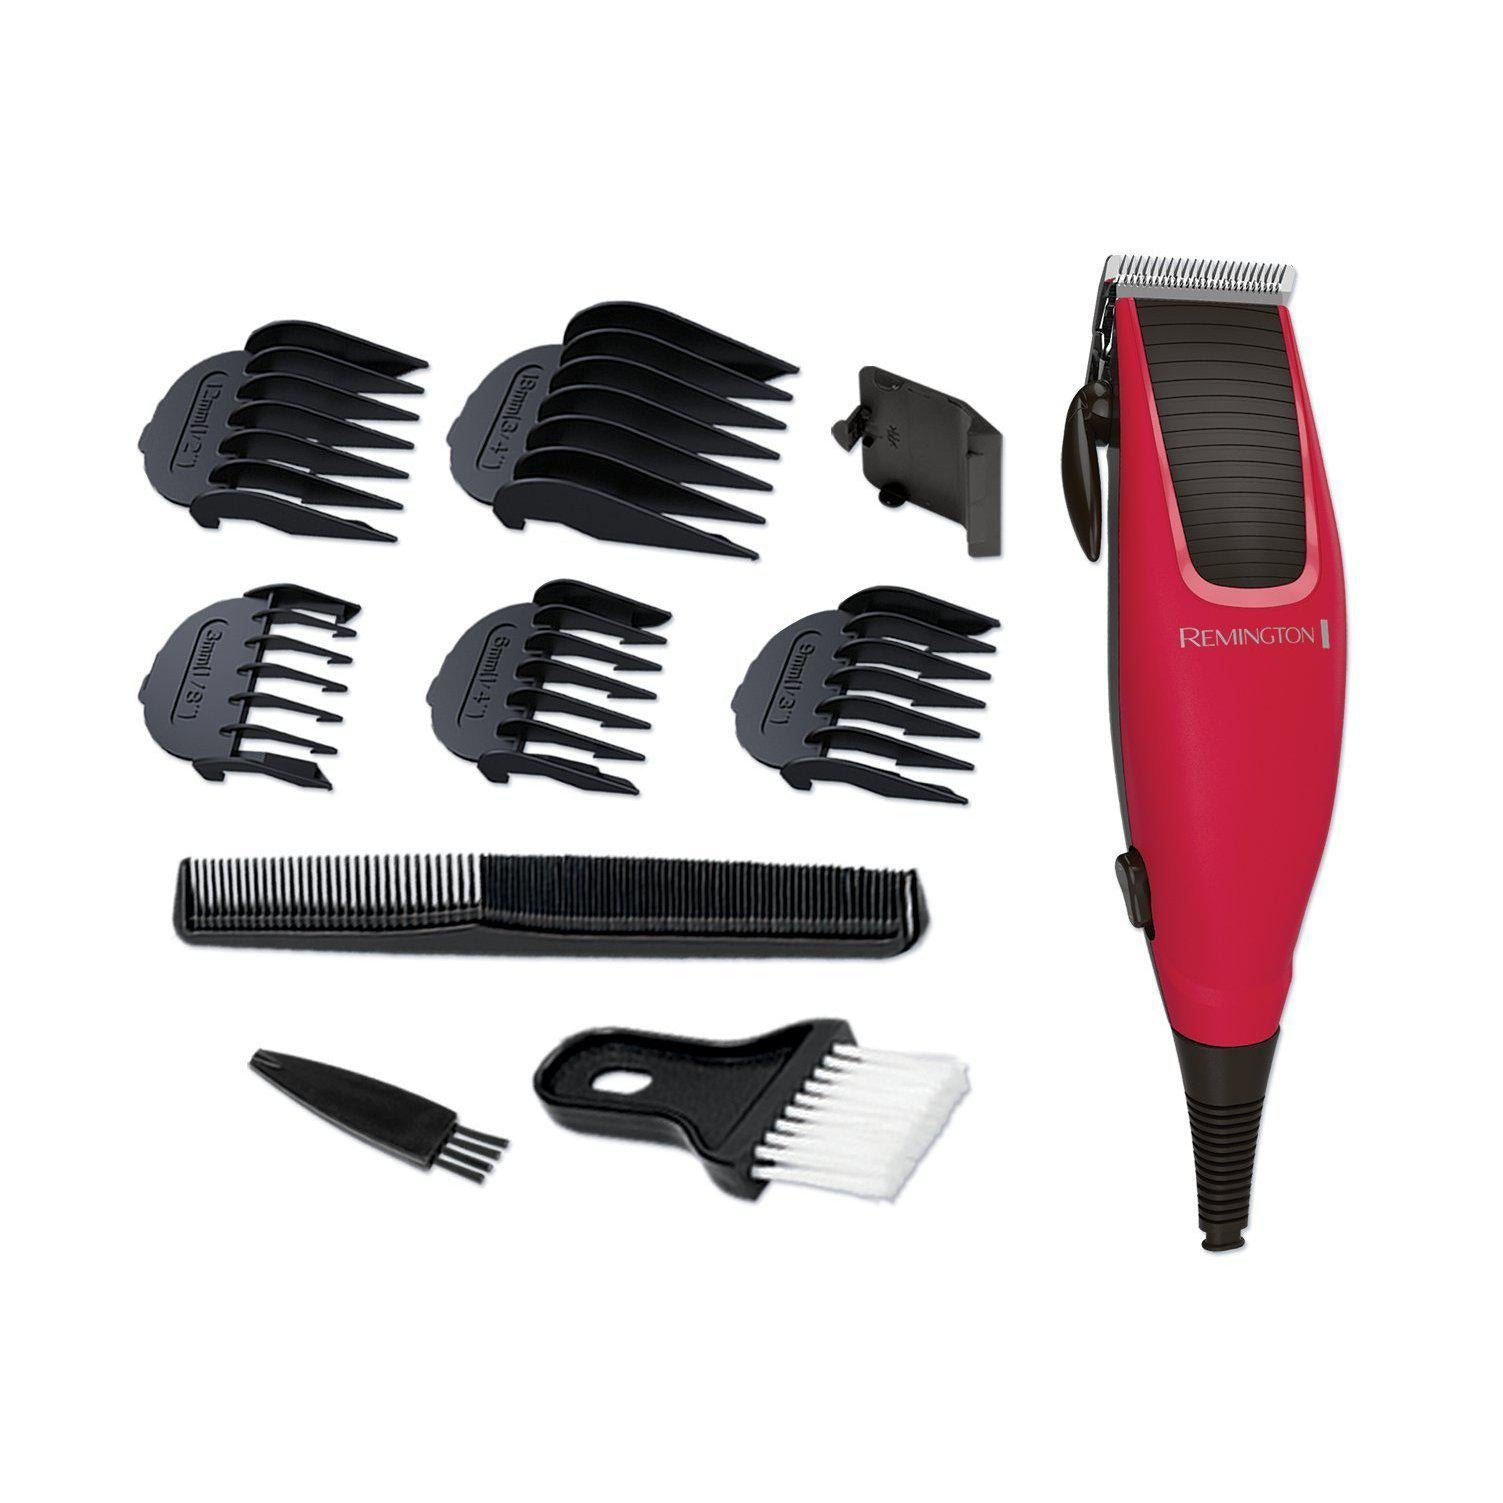 Remington Professional Apprentice HC5018 Hair Clipper - Remington - Pazarska